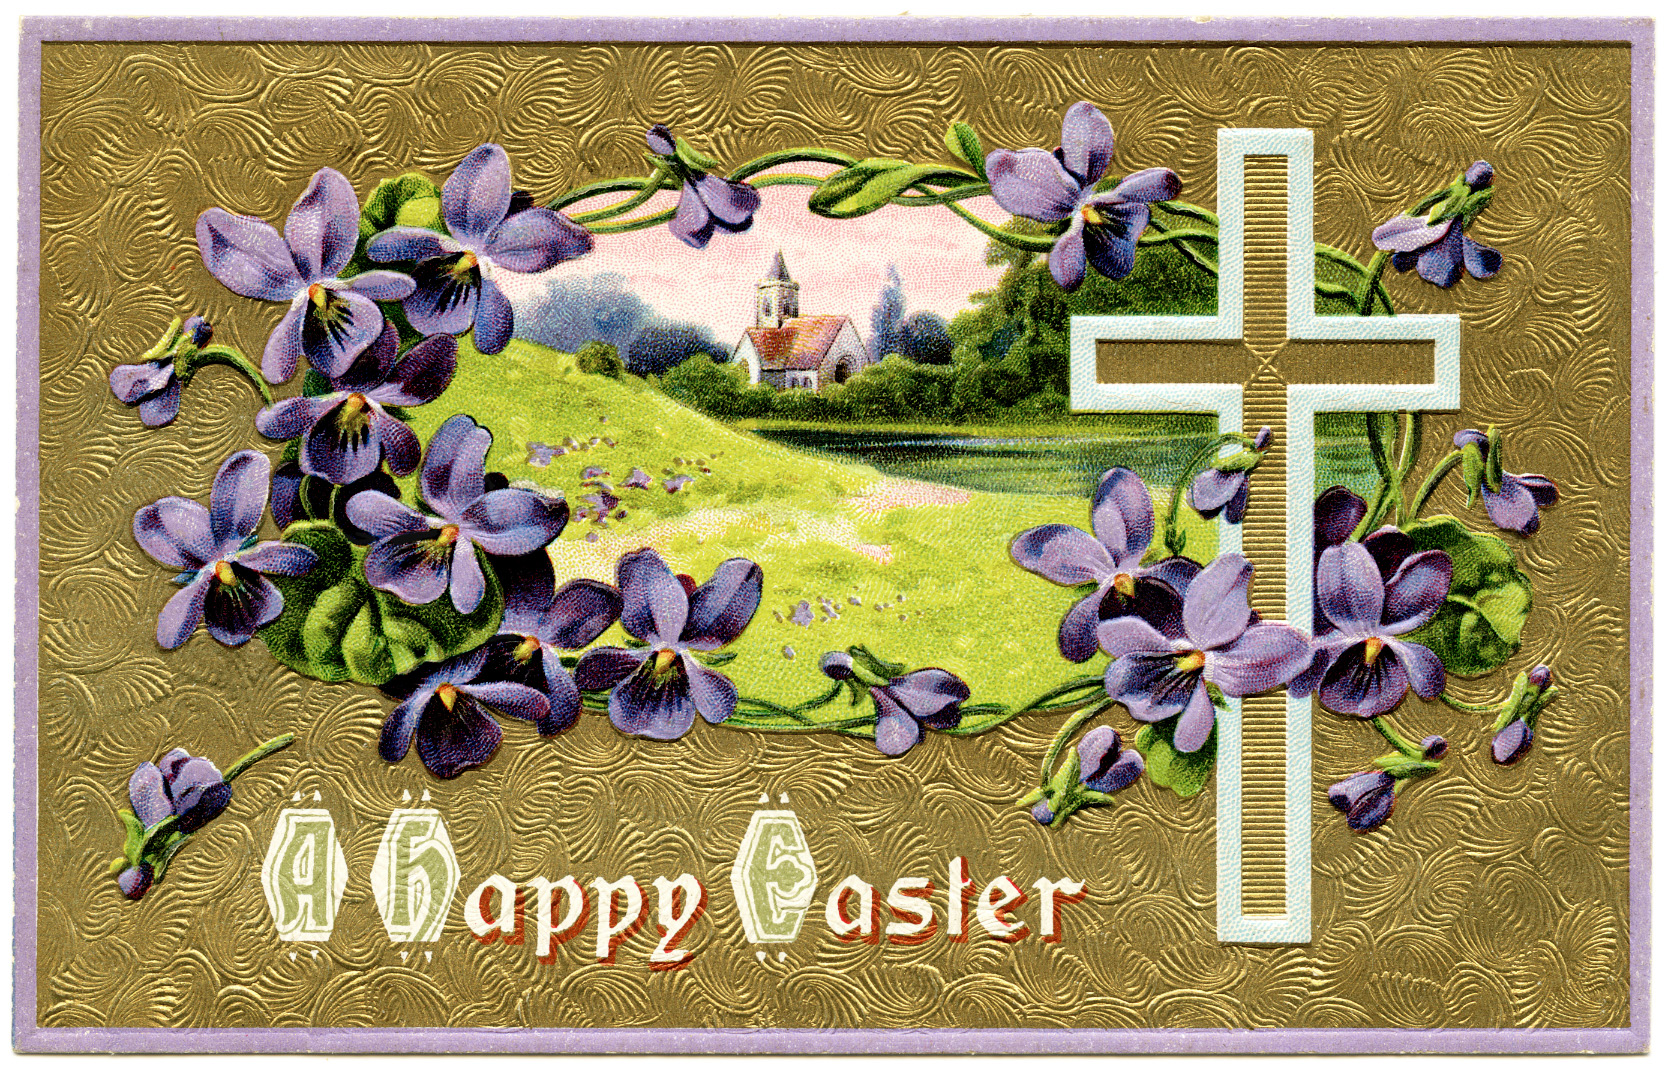 Vintage christian easter postcards old design shop blog - Christian easter images free ...